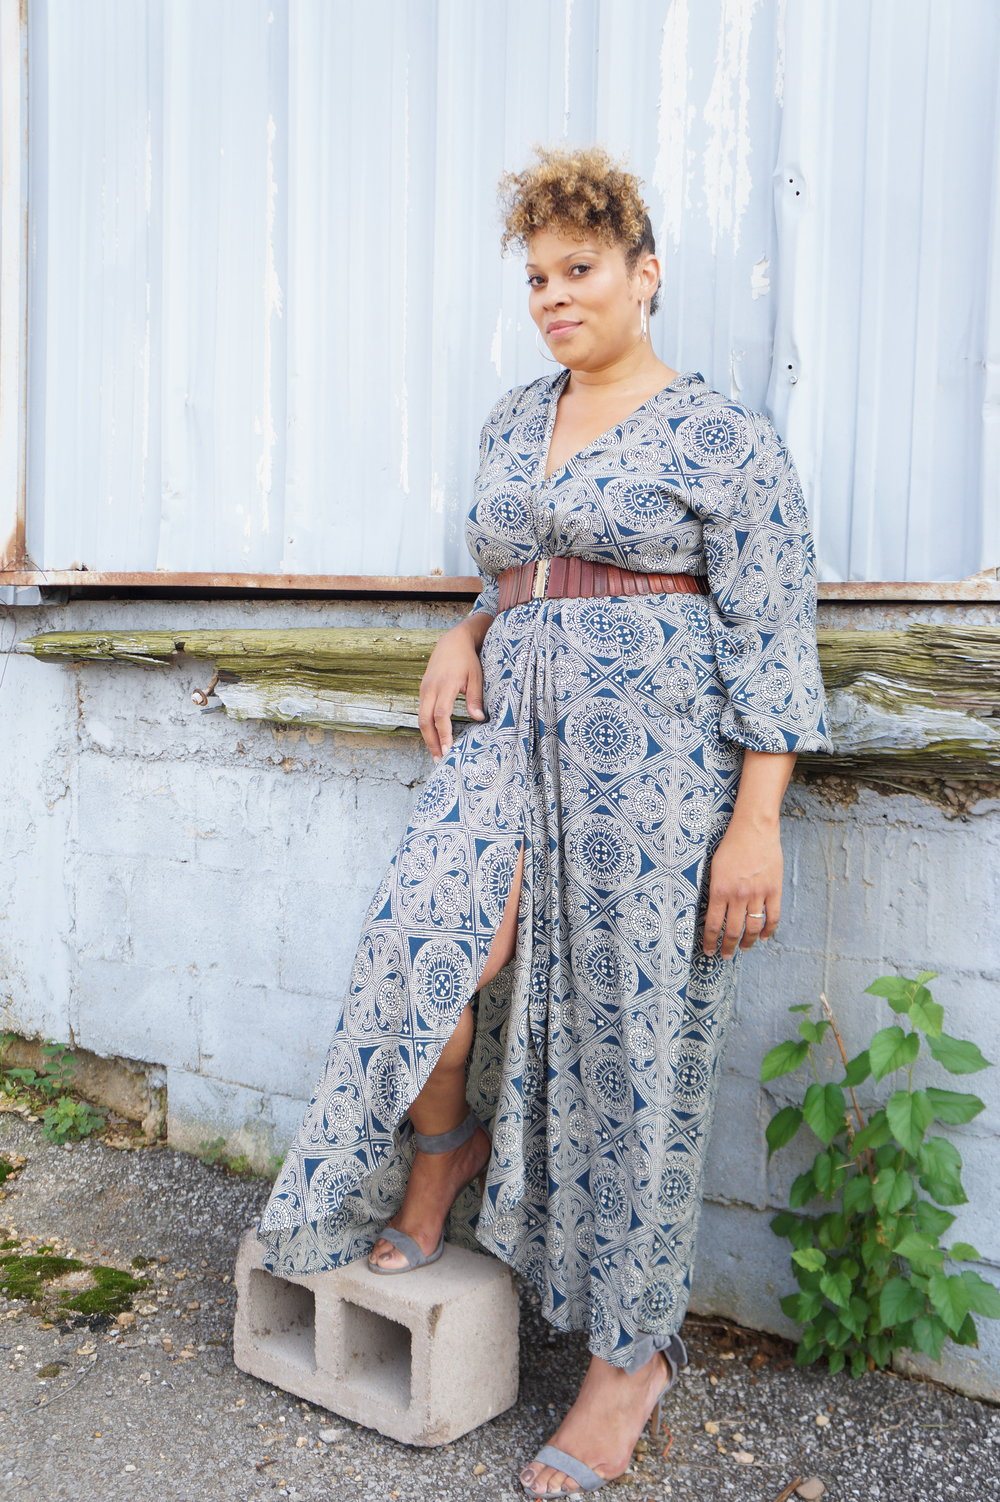 Andrea Fenise Memphis Fashion Blogger features Tiena Gwin for Working Girl Series